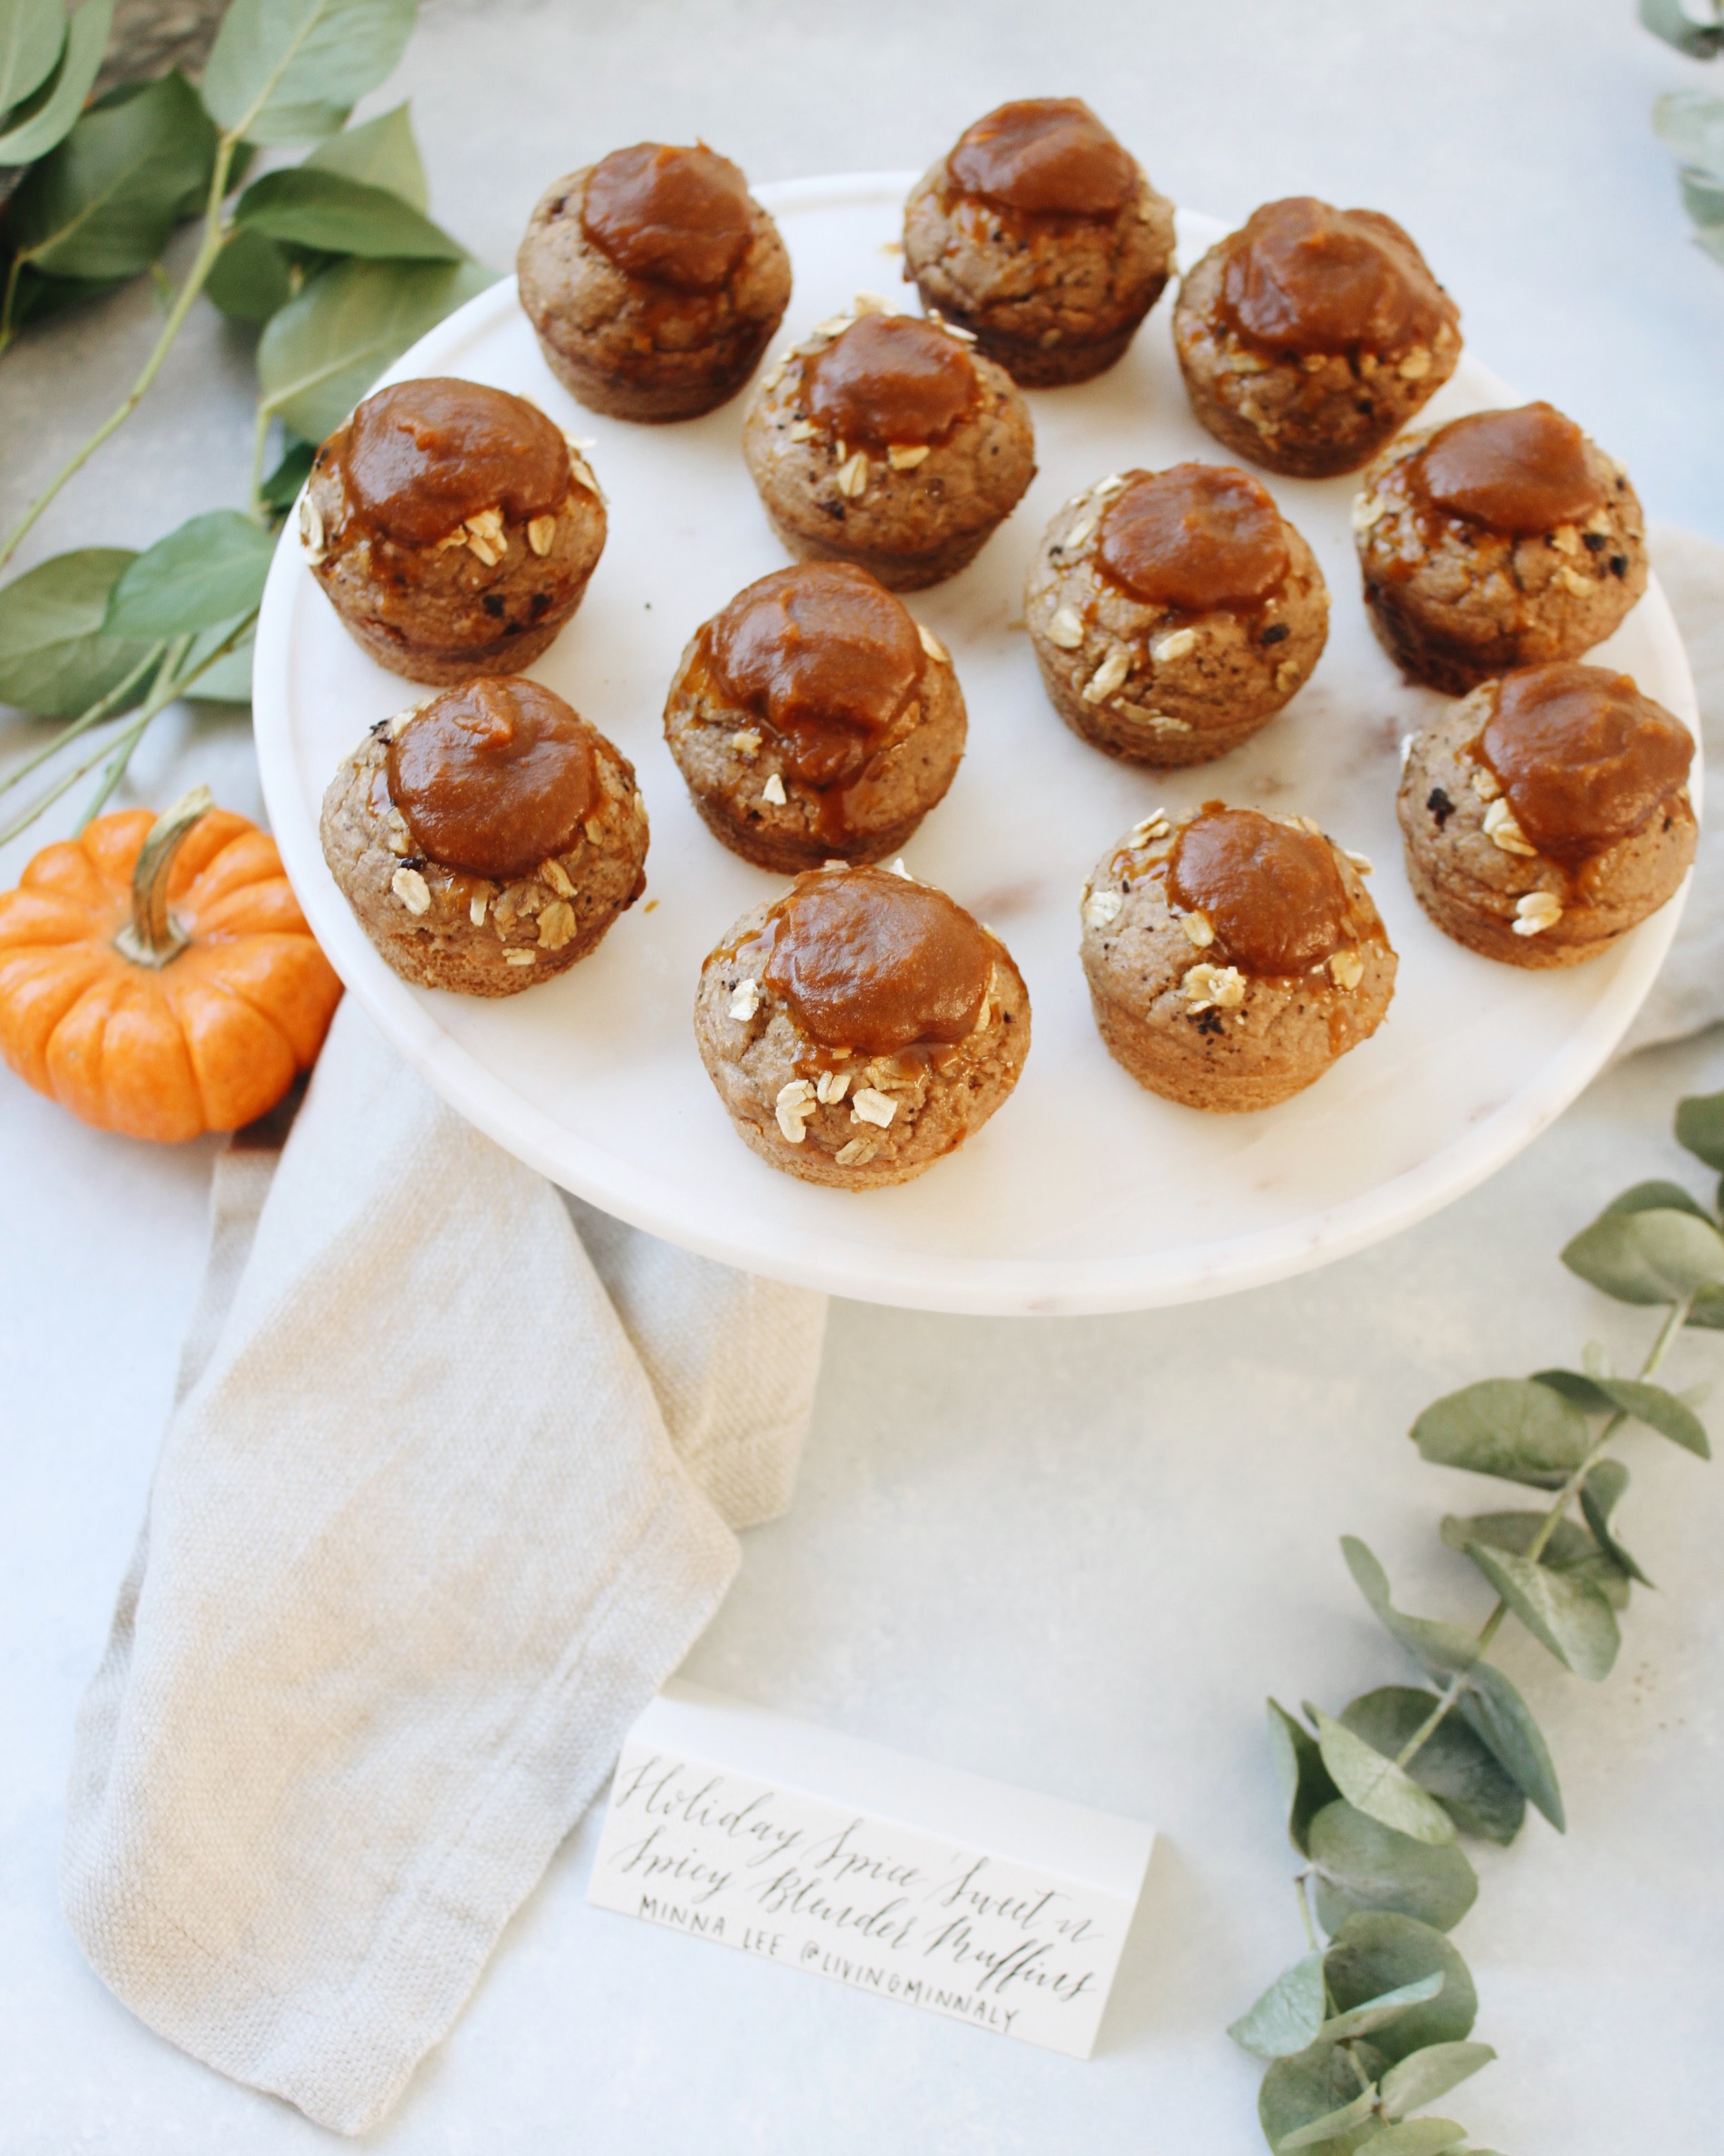 Holiday Spice Muffins for feedfeed + Vitamix __ 1.jpg